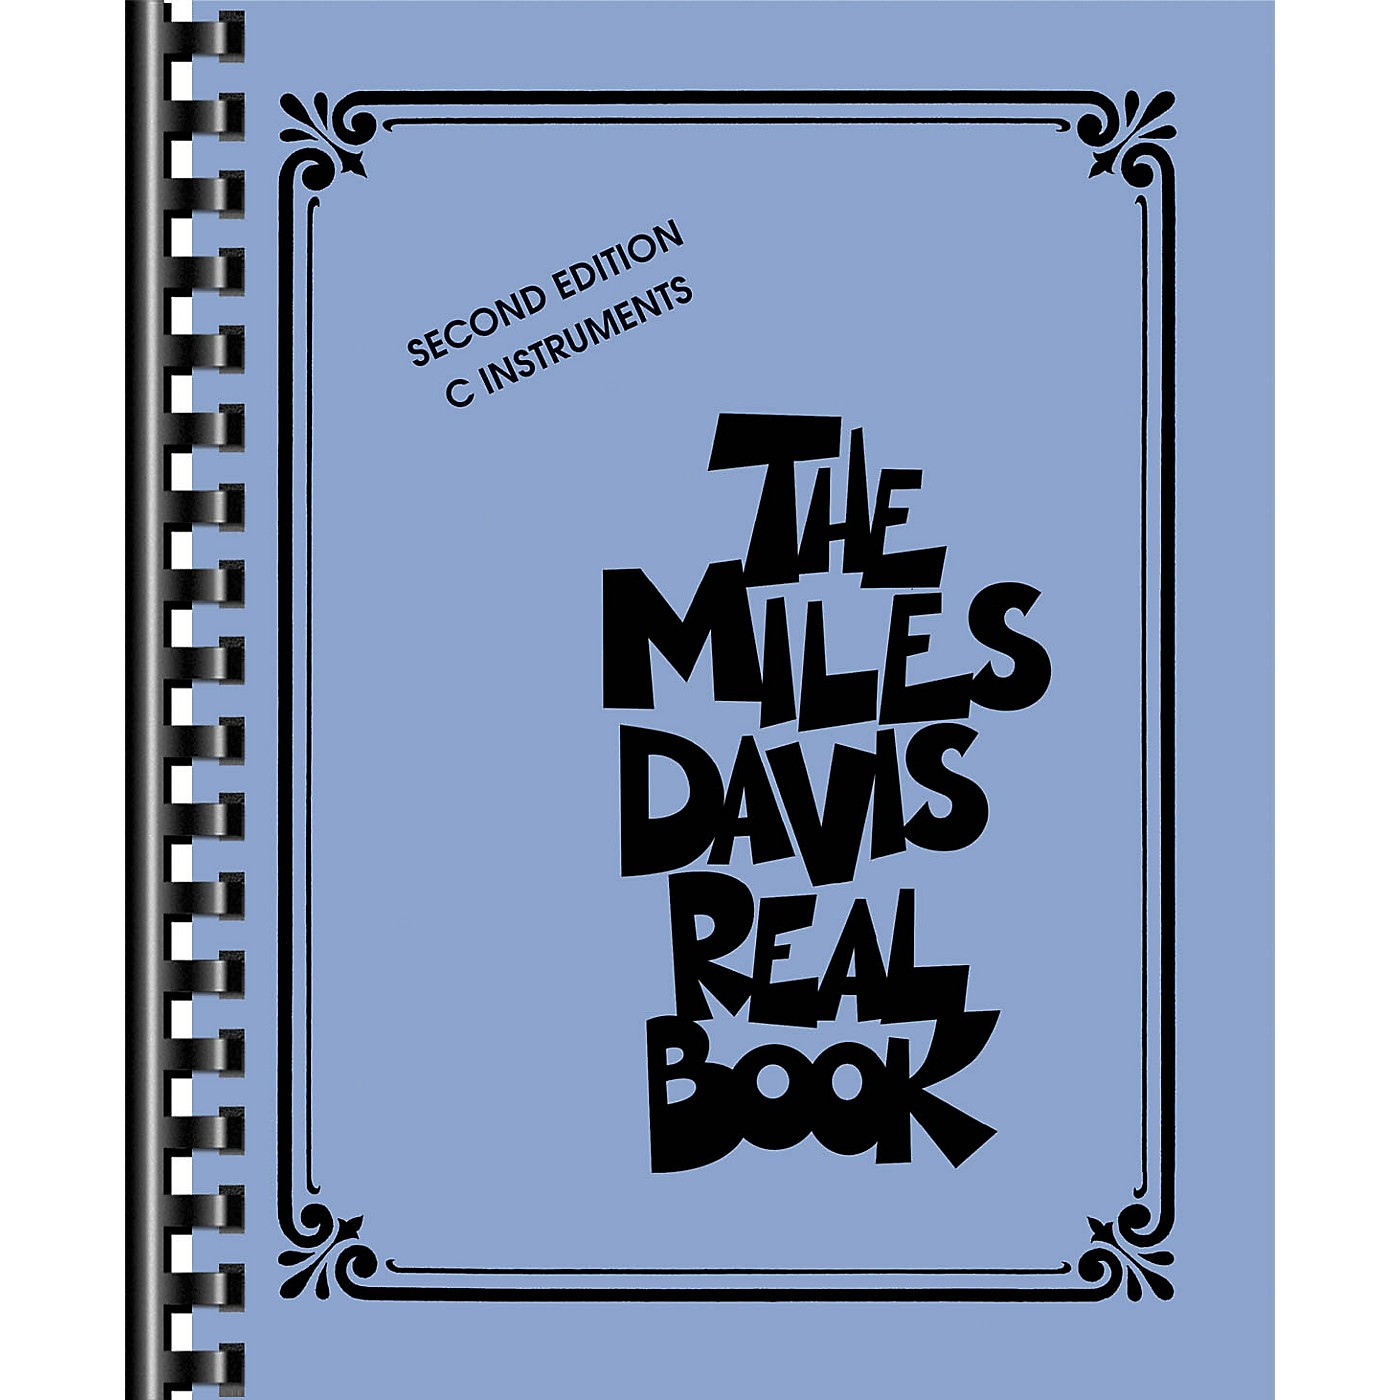 Hal Leonard The Miles Davis Real Book - Second Edition (C Instruments) Fake Book thumbnail